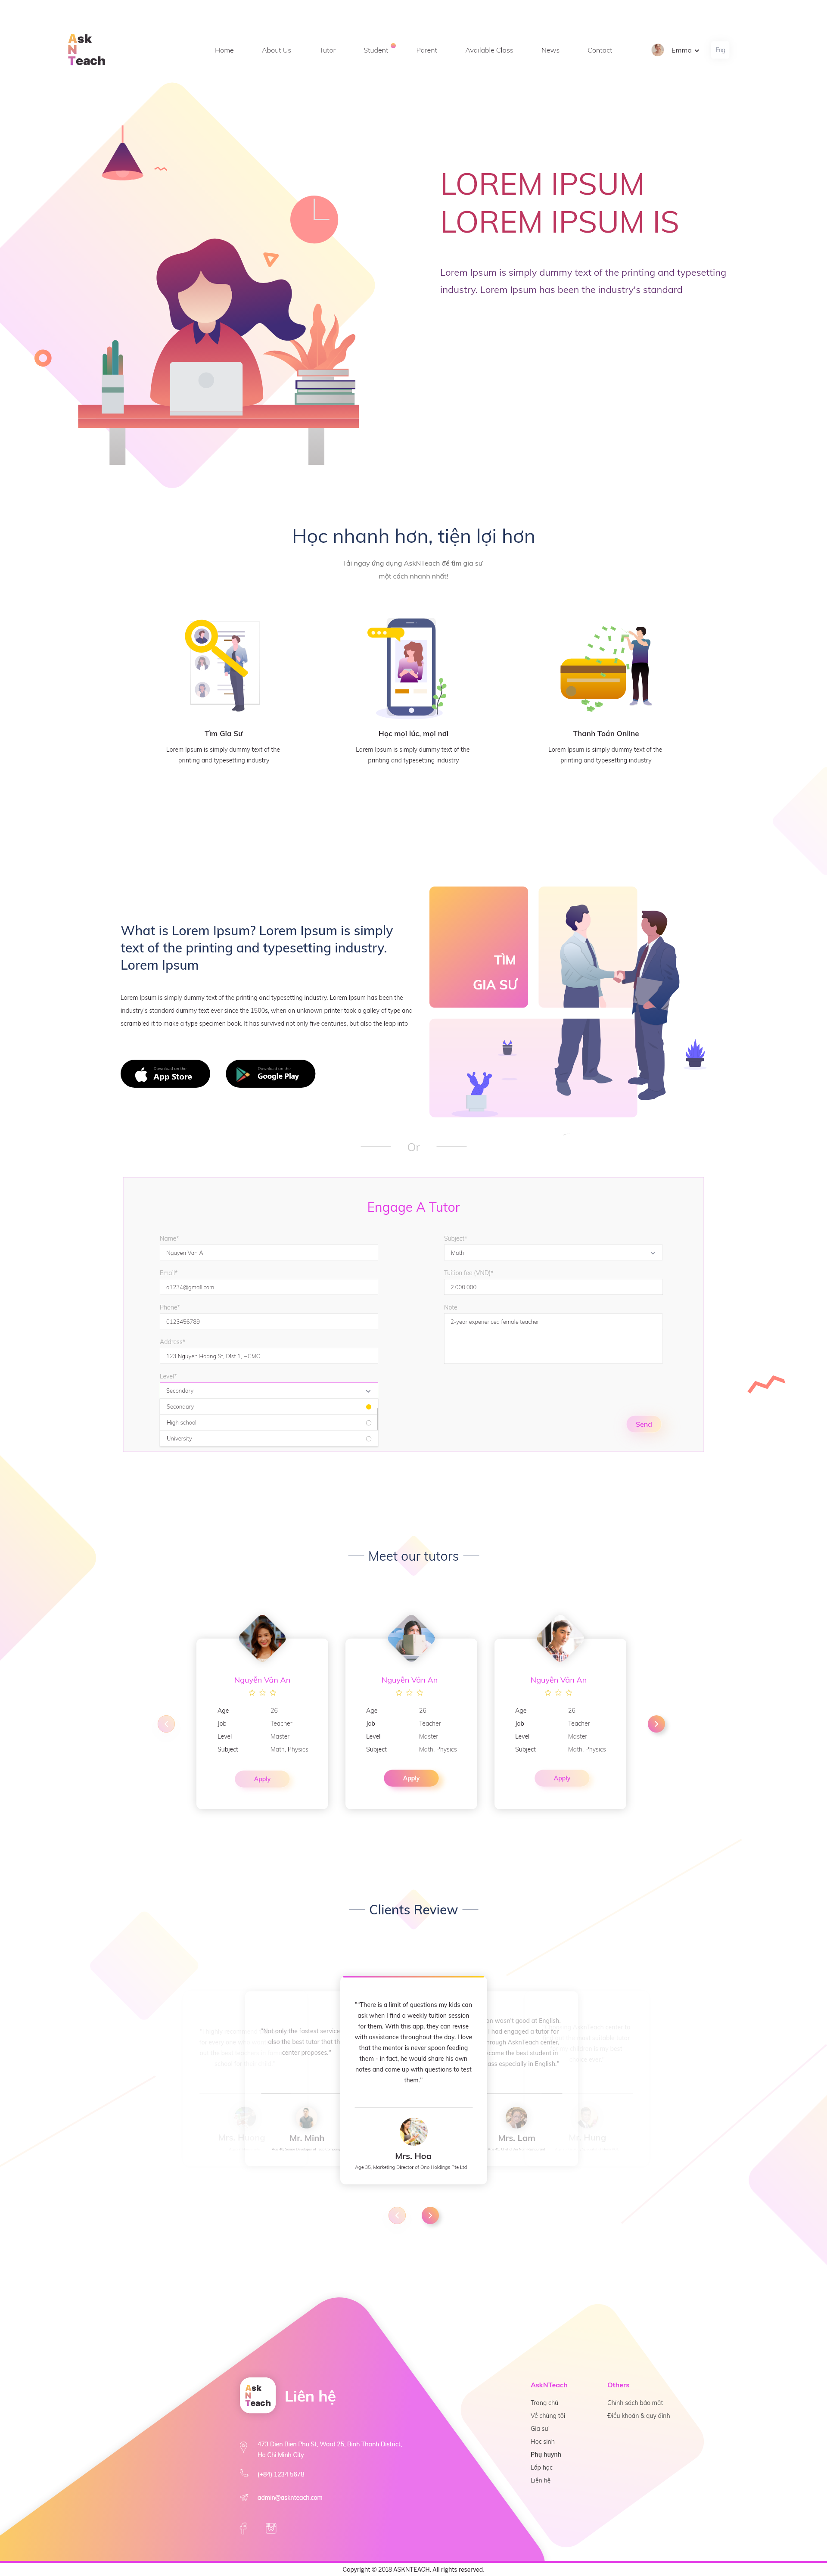 Check Out My Behance Project Web Design Https Www Behance Net Gallery 74632045 Web Design Web Design Trends Web Design Web Design Company